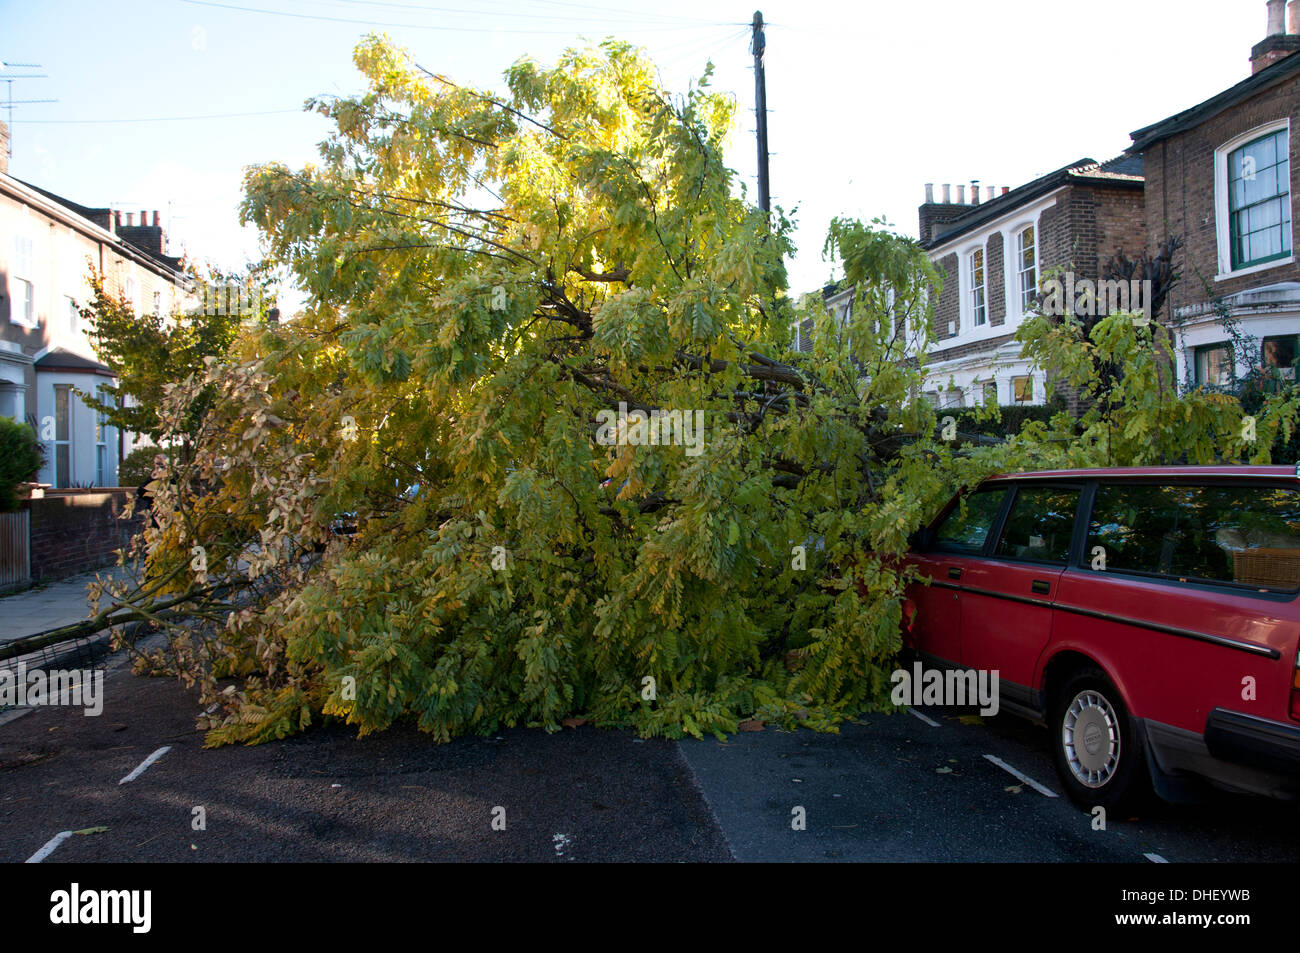 St Jude storm October 28th 2013. Hackney , East London. A fallen tree blocks the road. Stock Photo